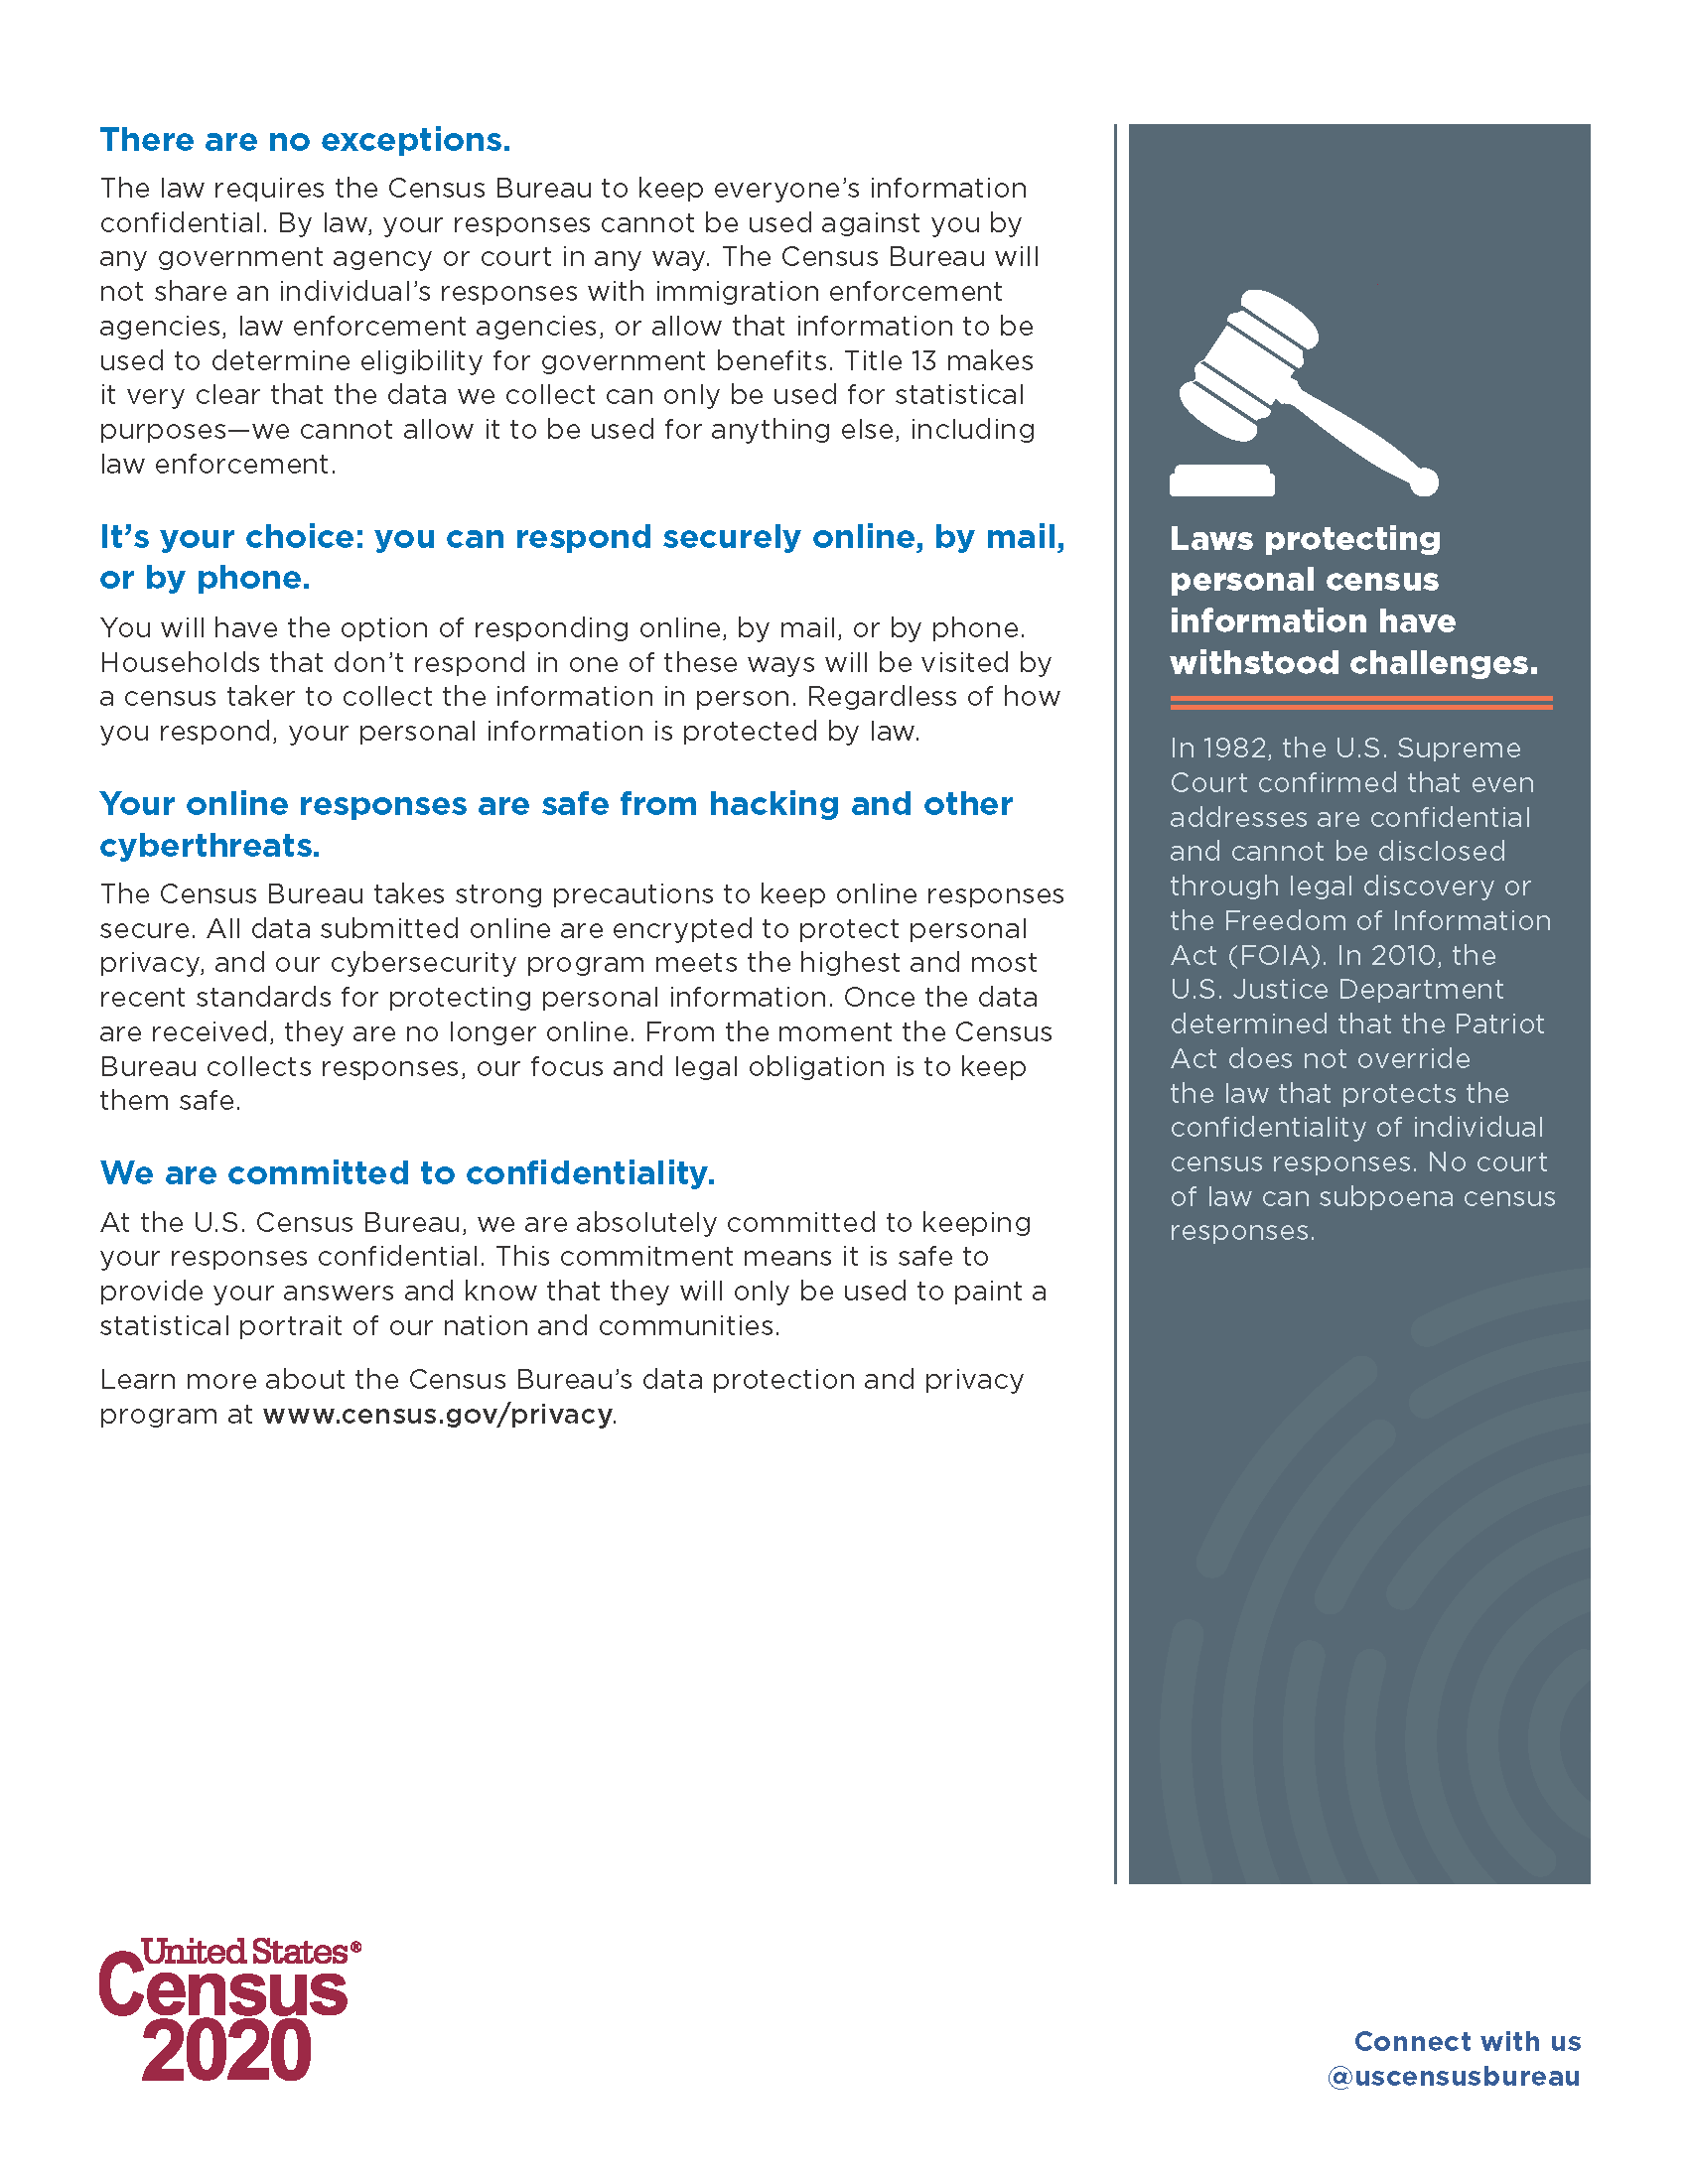 2020 Census confidentiality factsheet Page 2